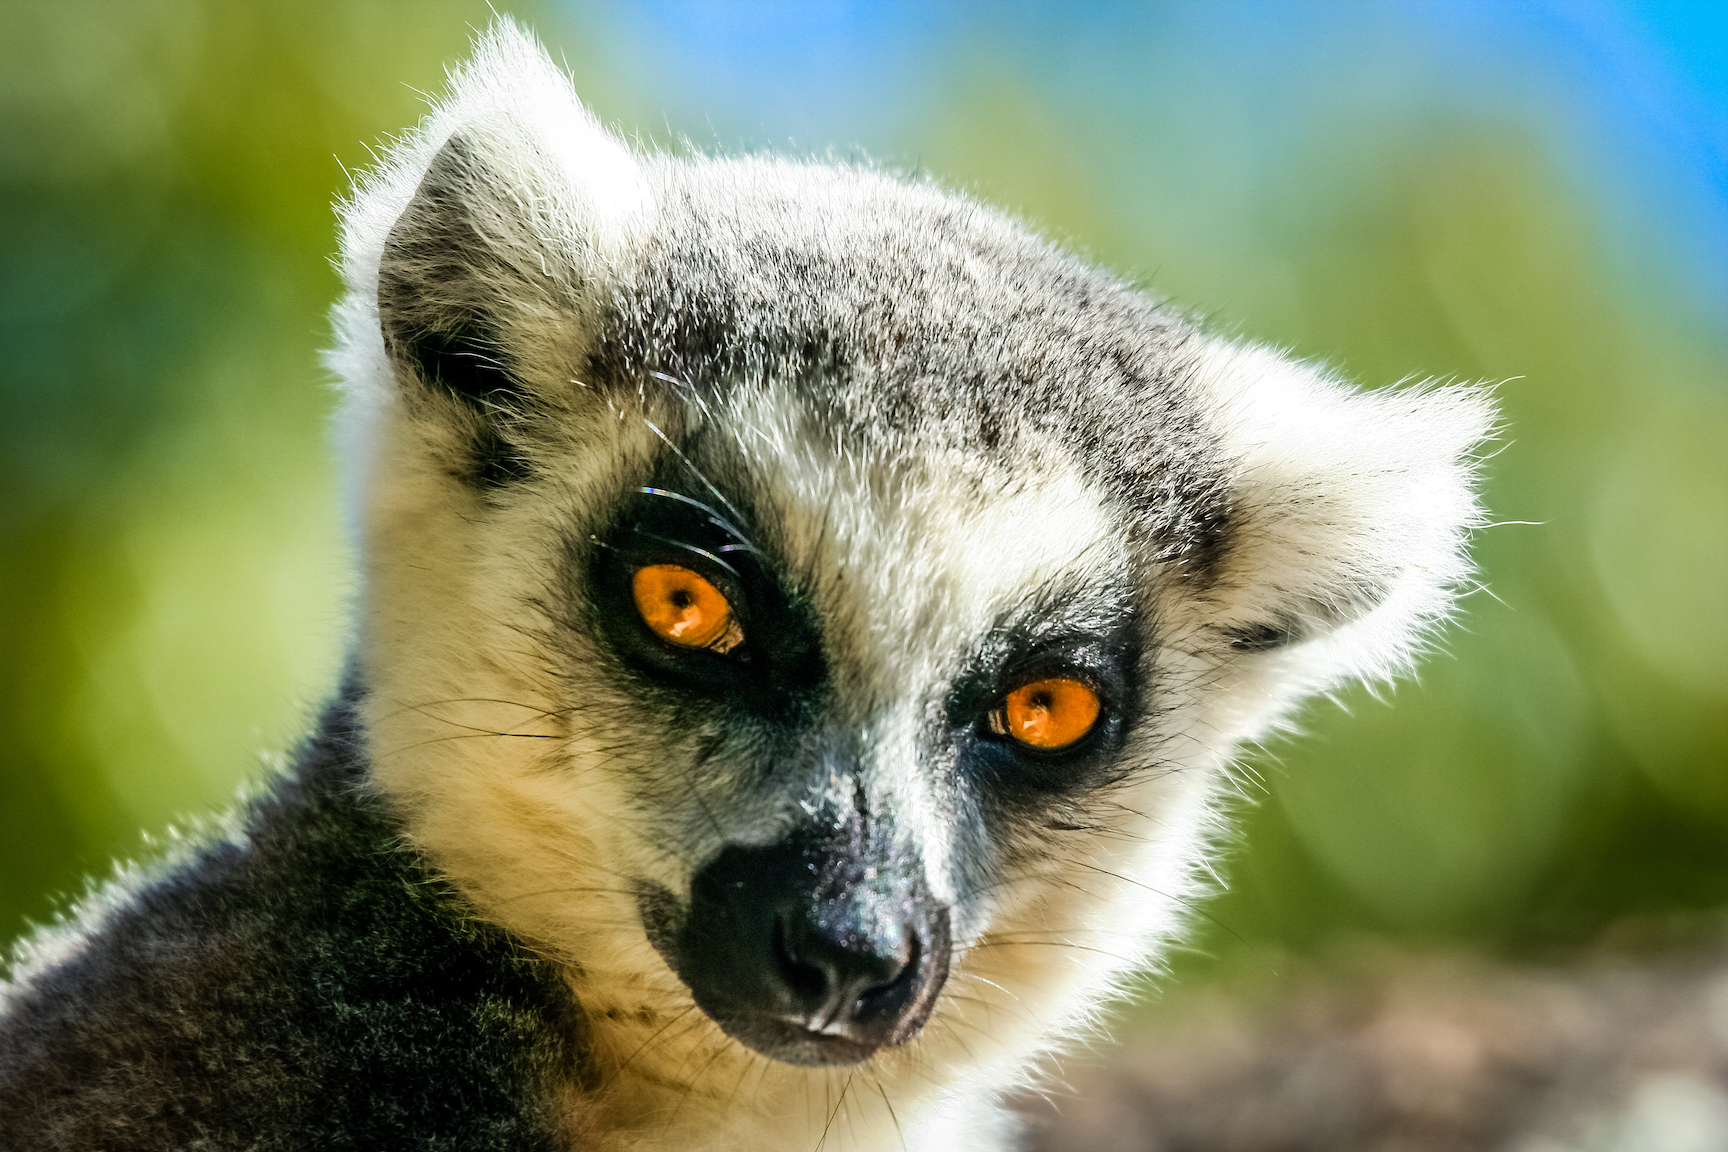 Sounding like something out of a James Bond movie, scientists are using facial recognition technology to track and gather data on lemurs.